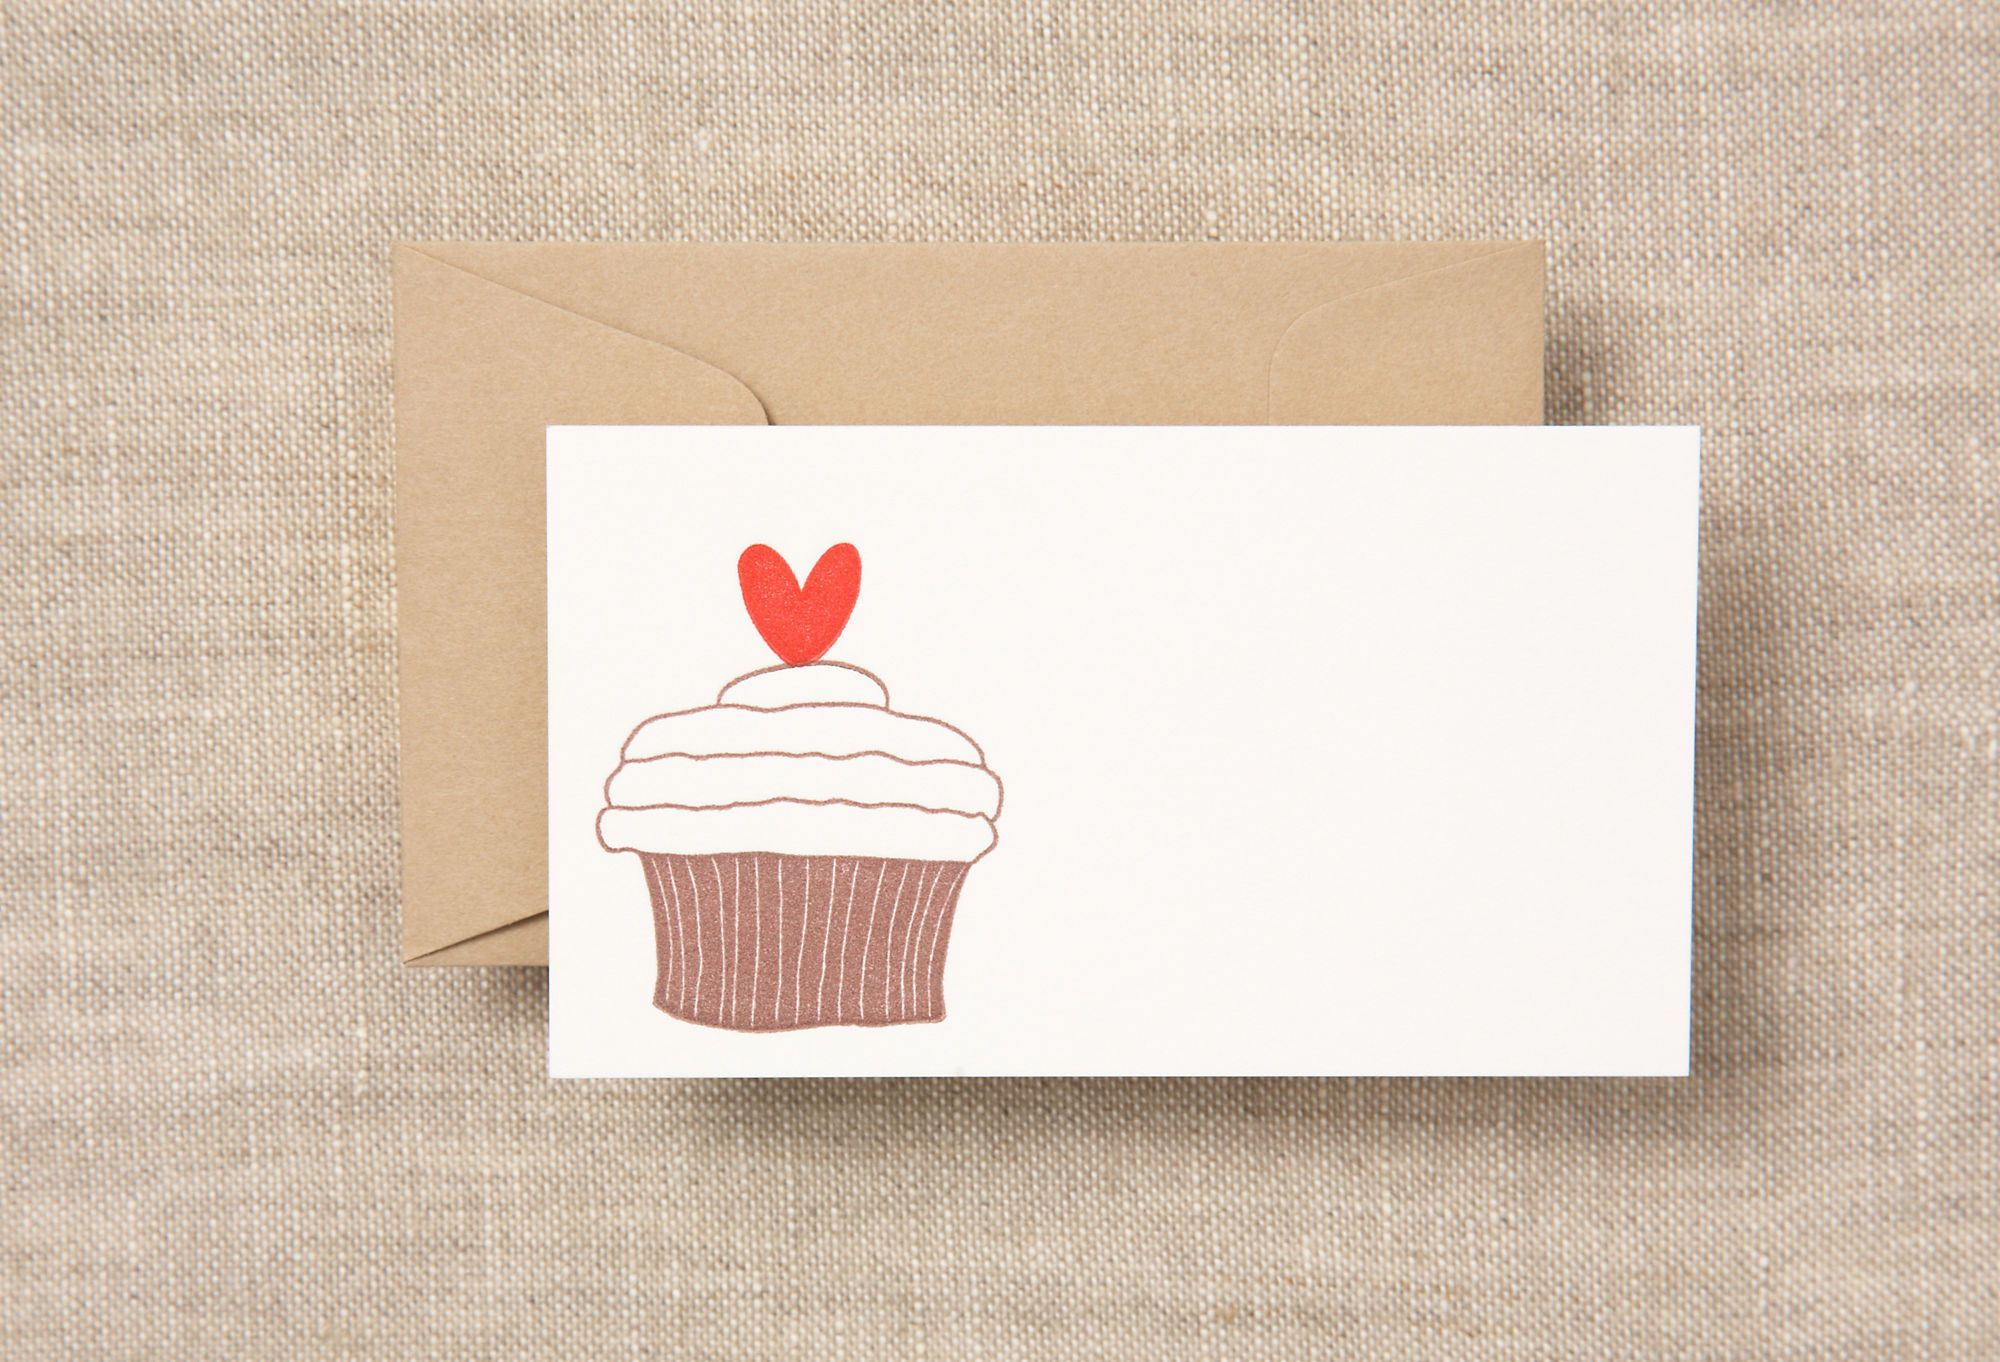 S/12 Petite Cards, Cupcake & Heart on One Kings Lane today